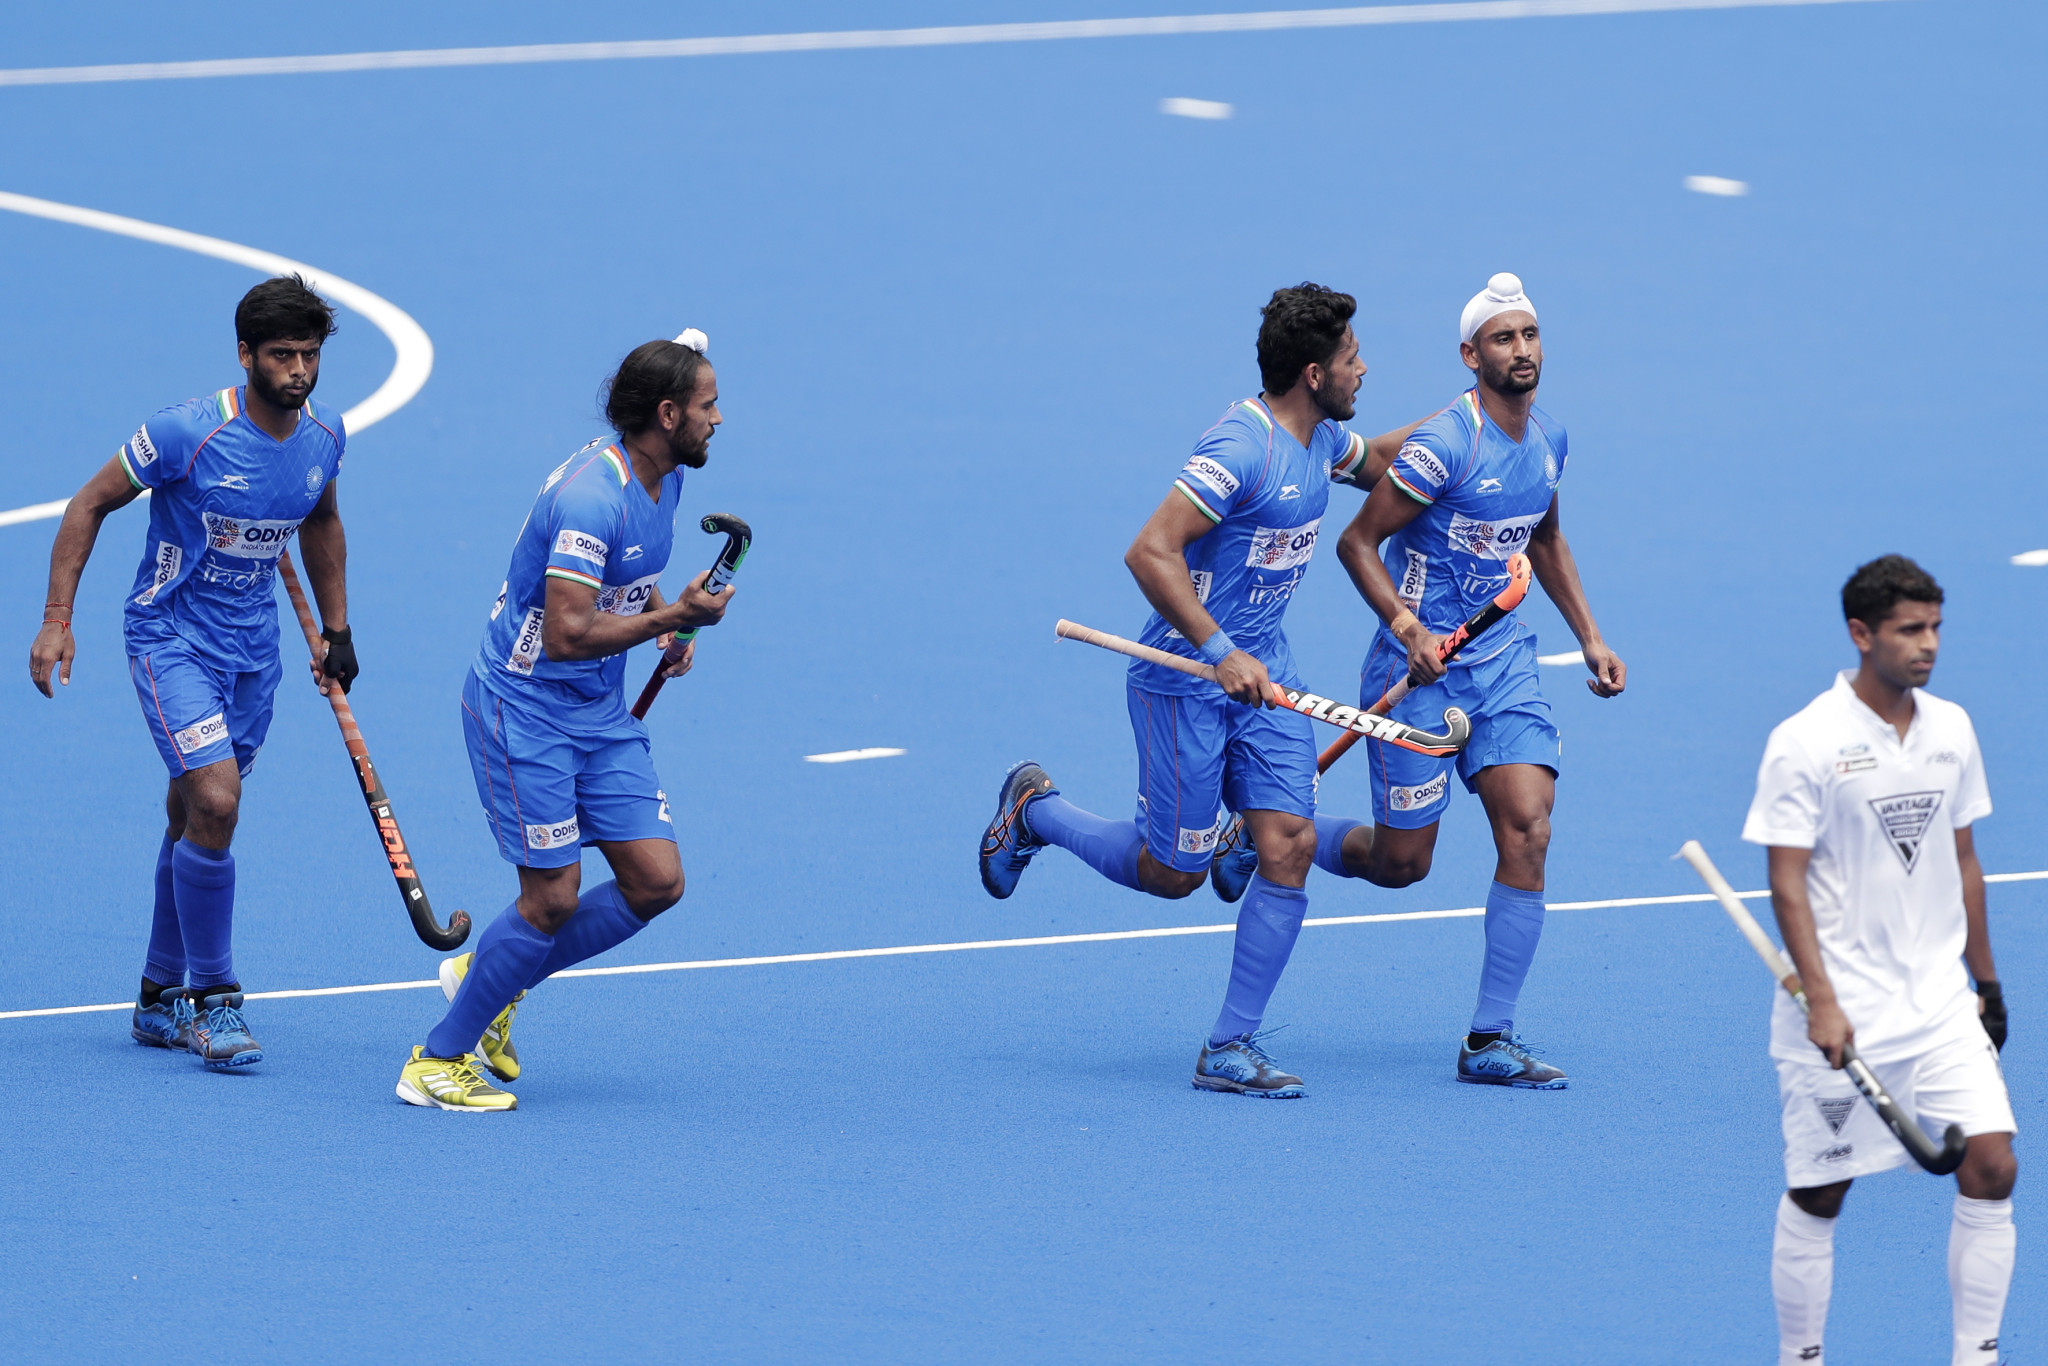 India's opponent for the two-leg Olympic hockey qualifier should be confirmed next Monday ©Getty Images